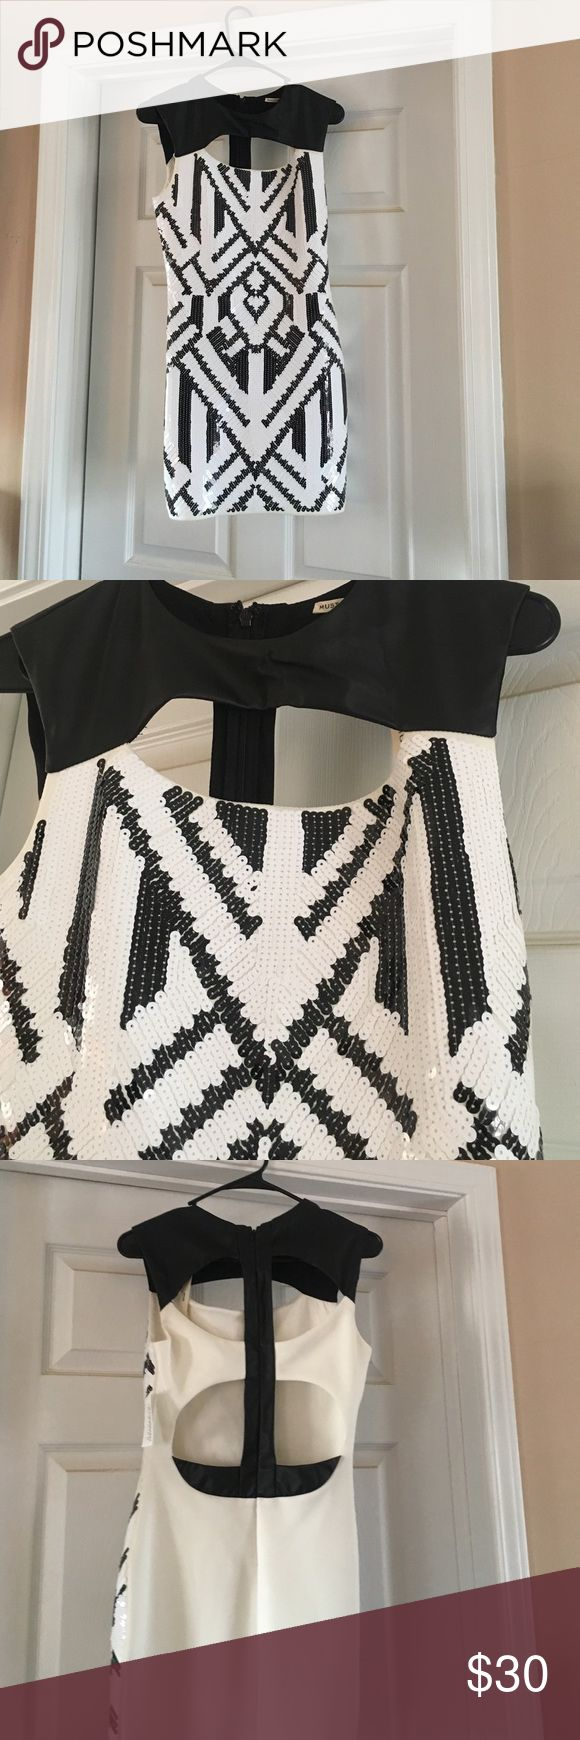 Black and white sequin dress Never worn black and white sequins dress with cut outs in the back. Necessary Clothing Dresses Midi